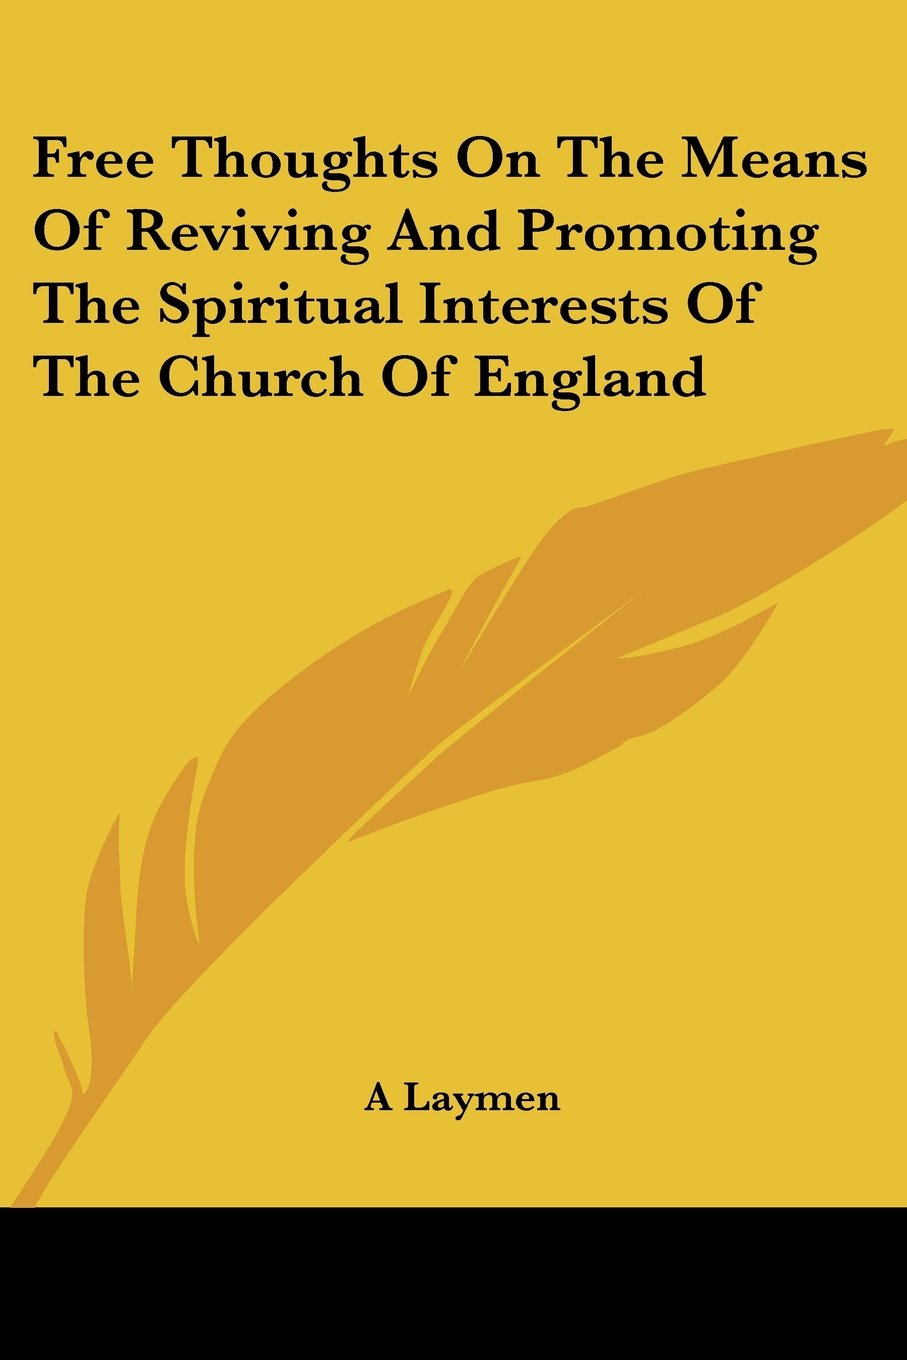 Download Free Thoughts on the Means of Reviving and Promoting the Spiritual Interests of the Church of England pdf